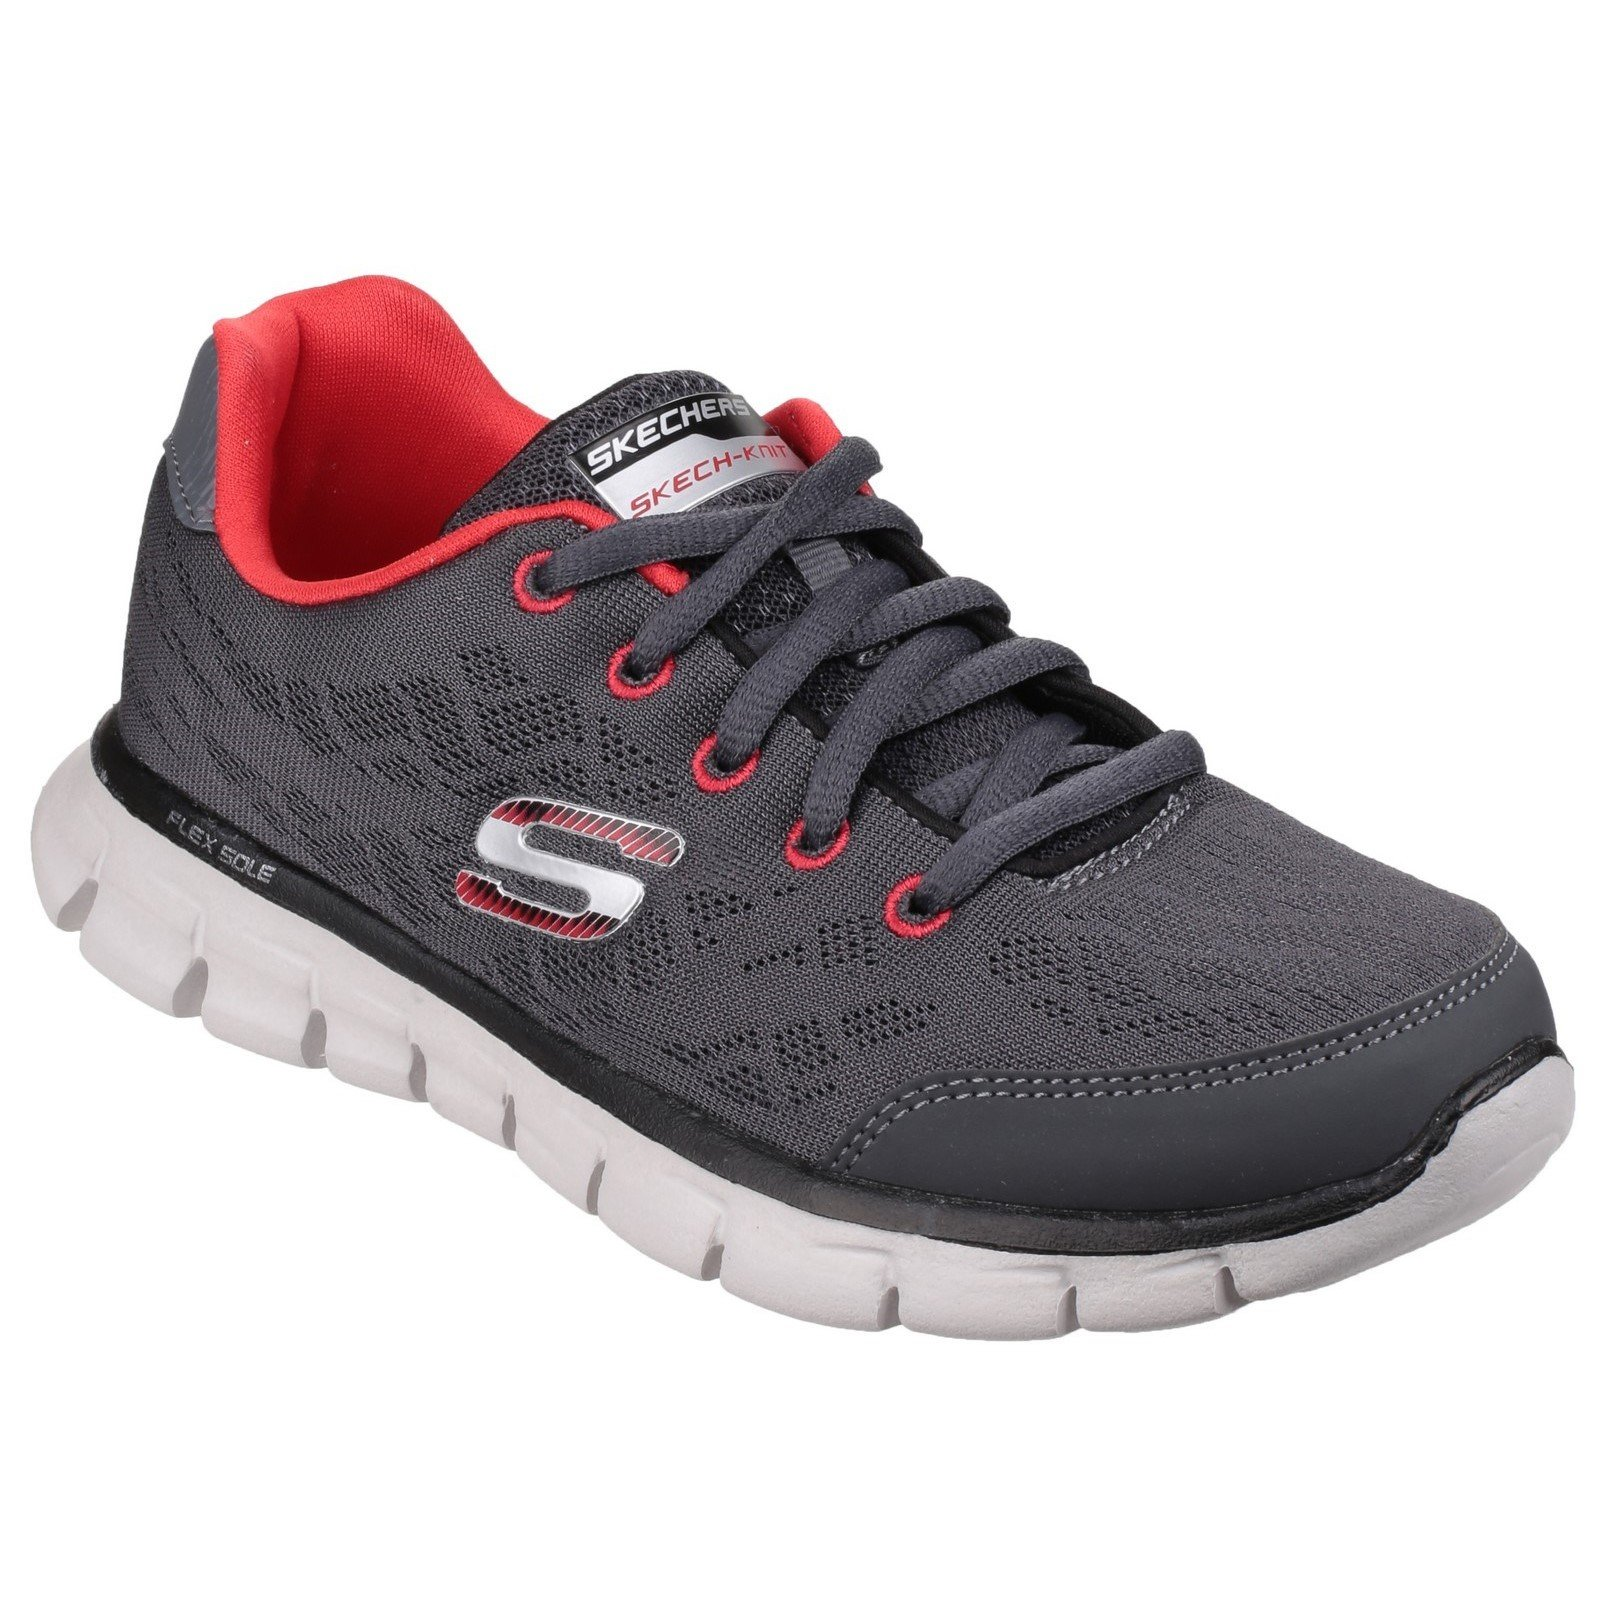 Skechers Kid's Synergy Fine Tune Lace up Trainer Multicolor 23918 - Grey/Red 11.5